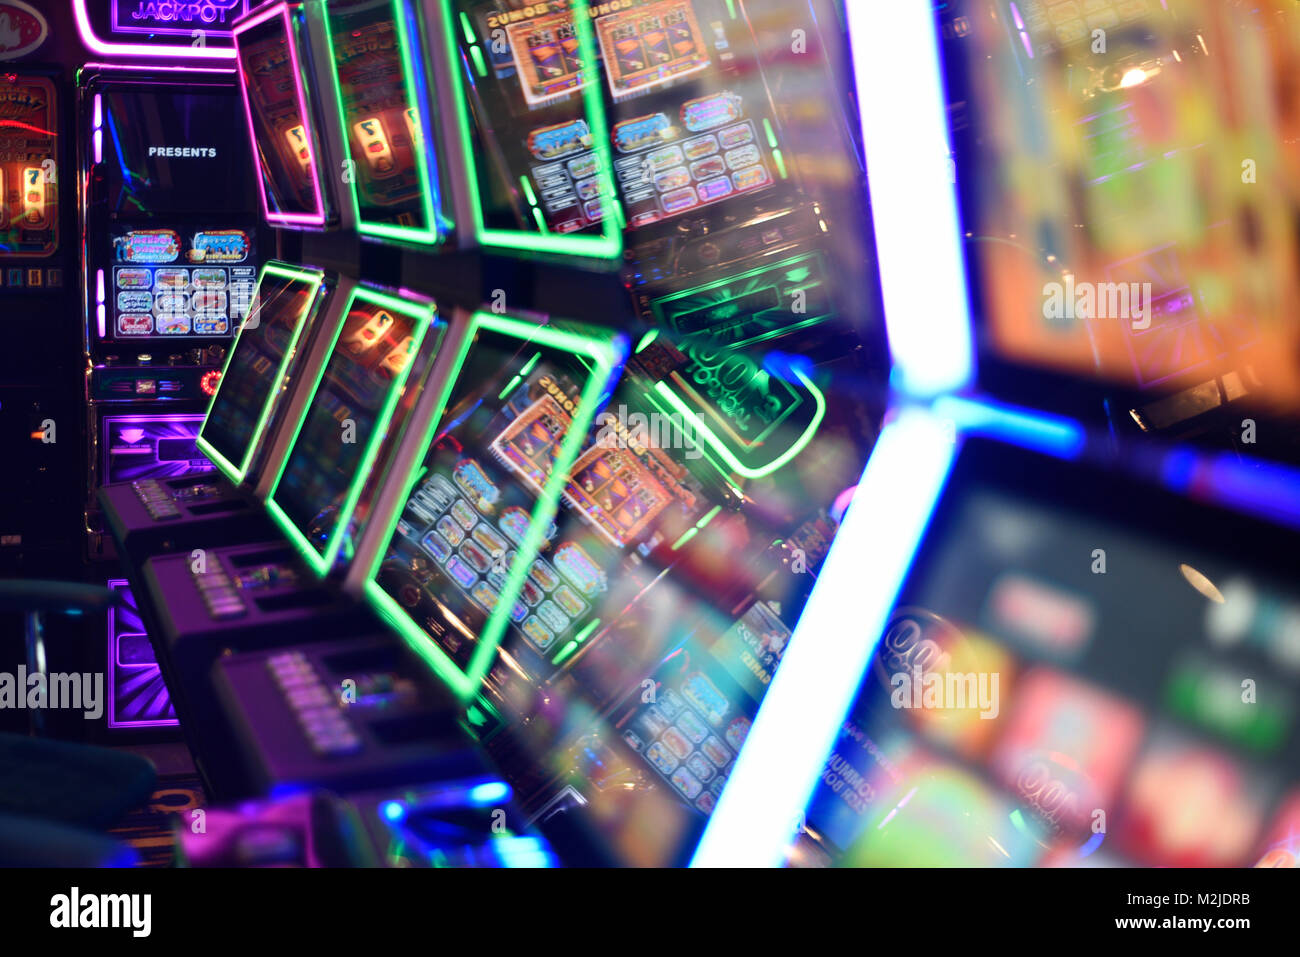 Fruit machines, gambling machines, slot machines concept, abstract in amusement arcade UK - Stock Image